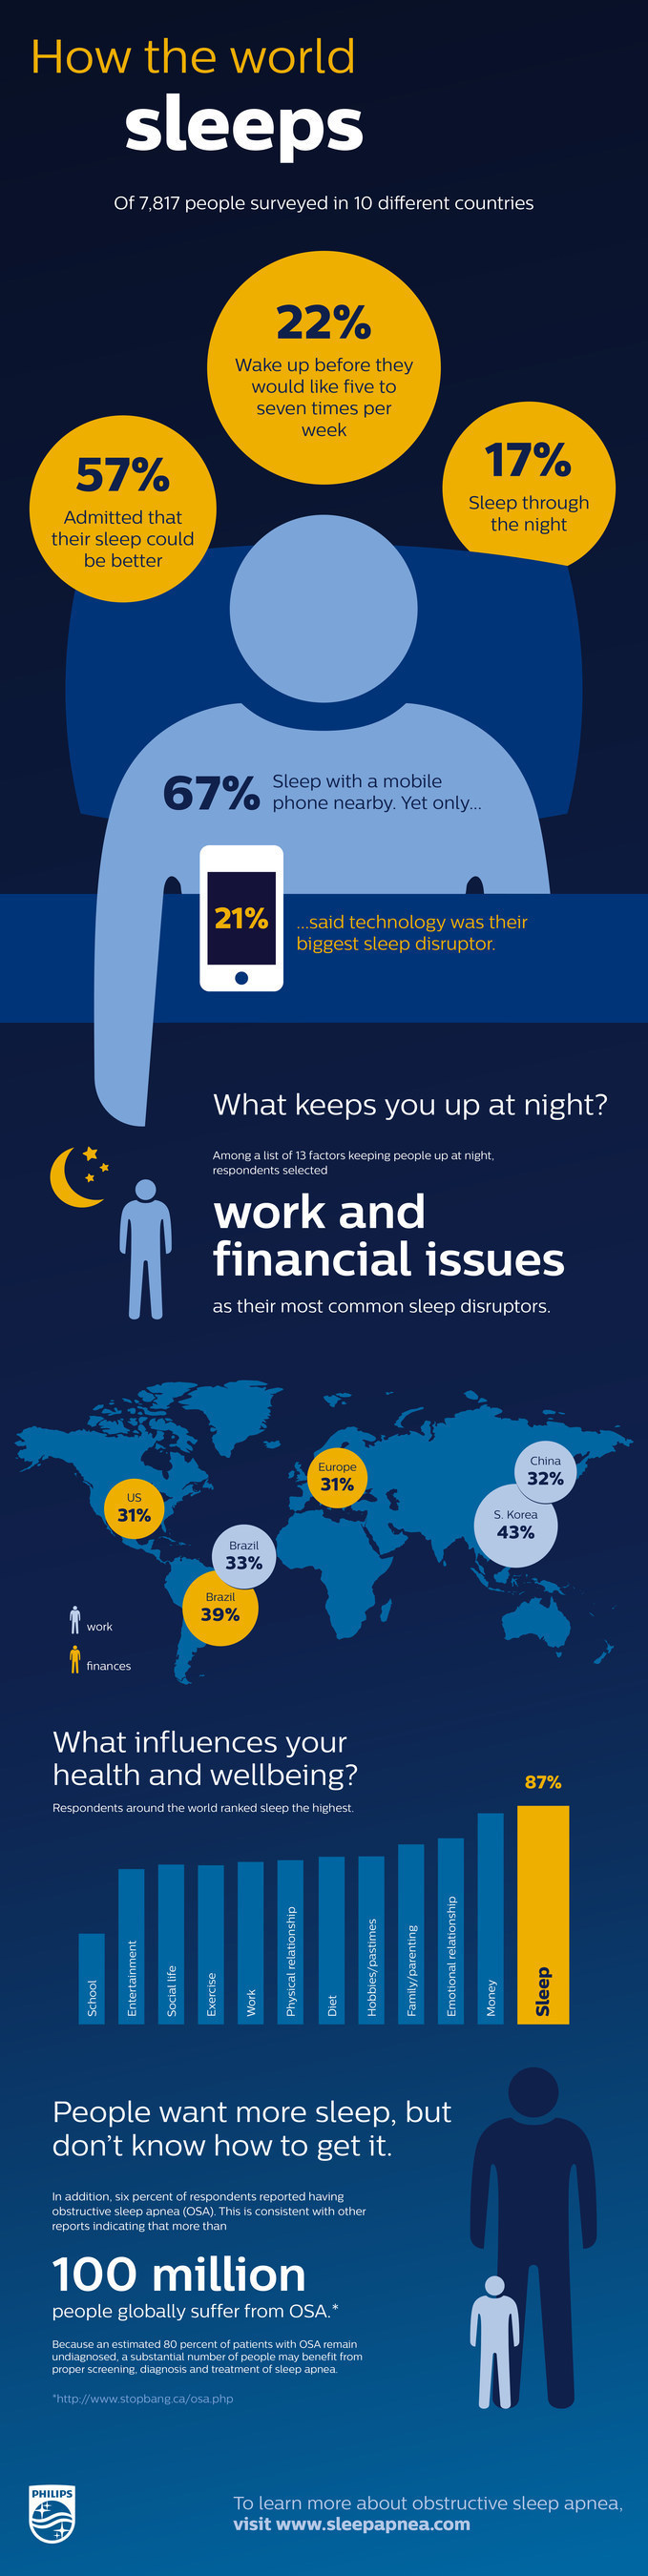 Thousands report economic pressures impacting a good night's sleep, Philips 10-country survey reveals